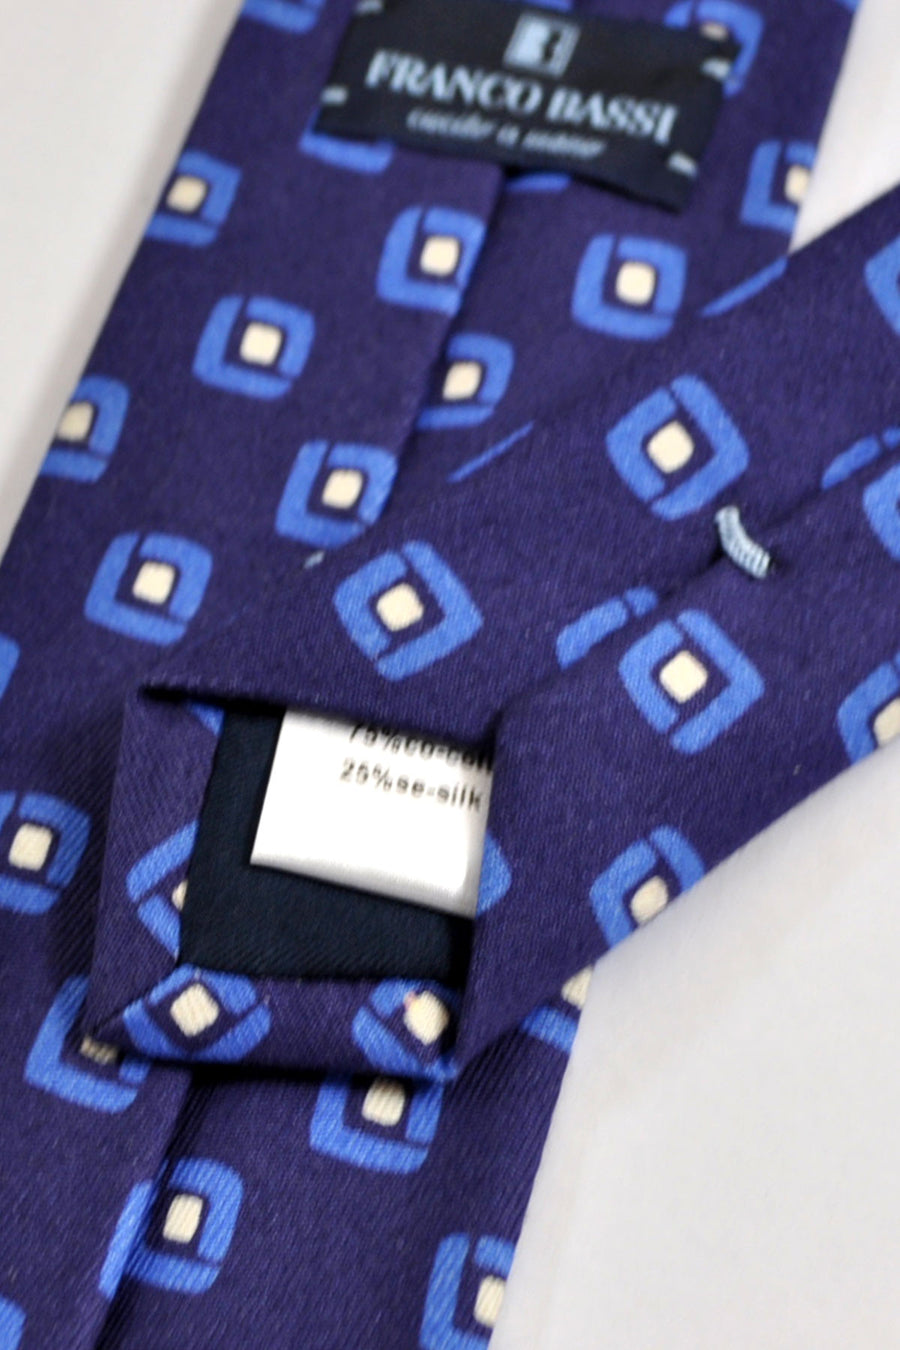 Franco Bassi Tie Navy Blue Geometric - Narrow Necktie